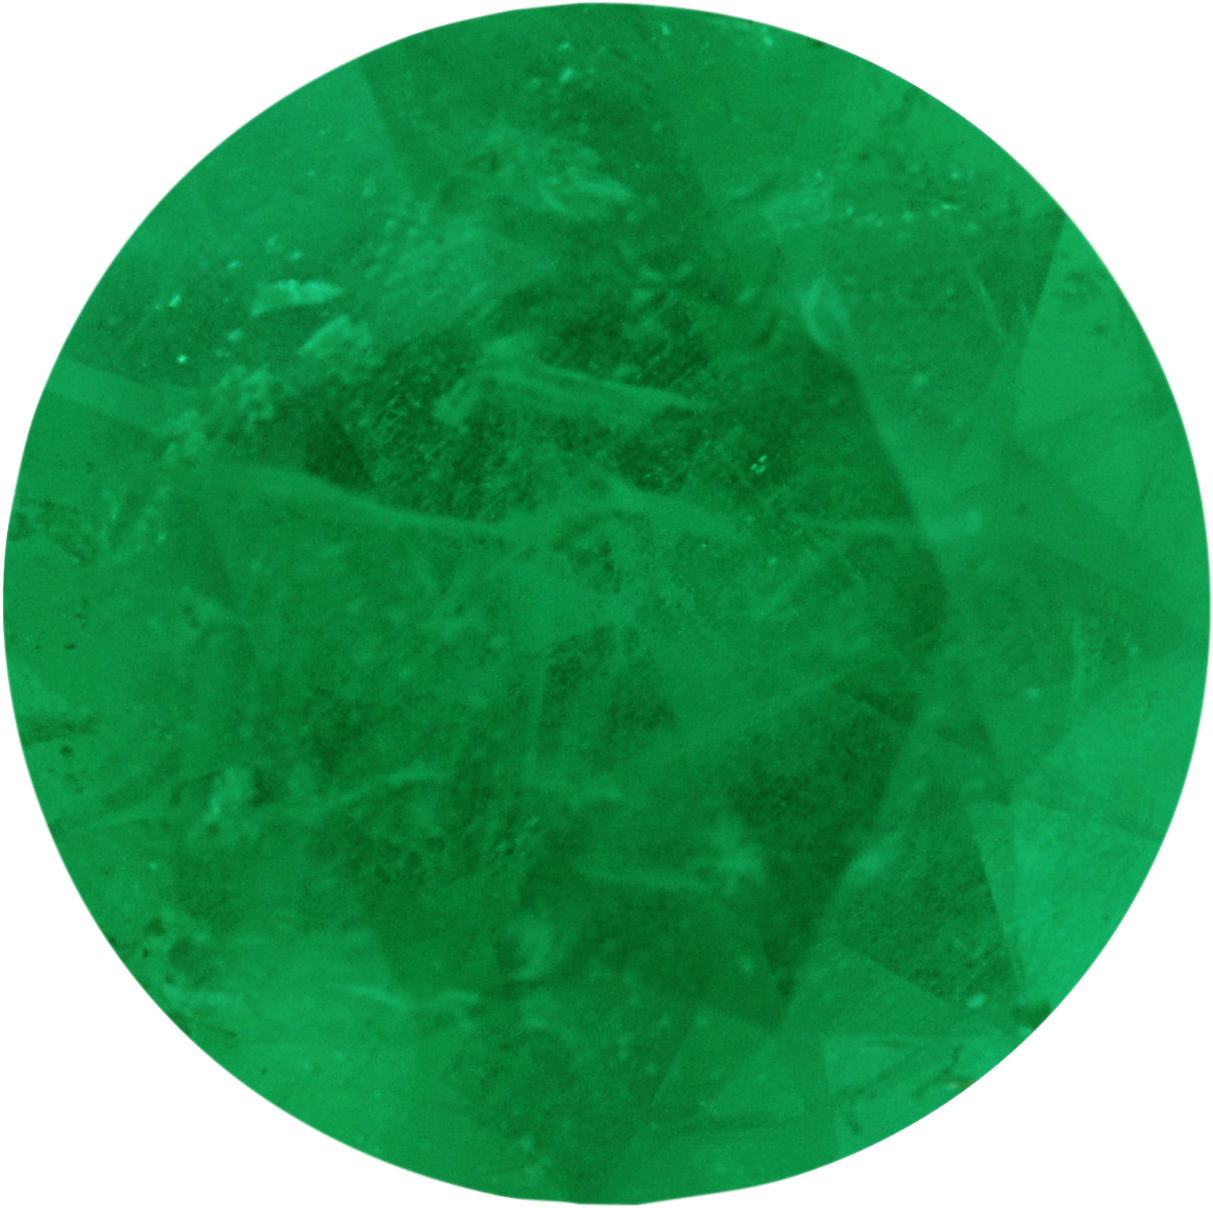 0.64 carats Emerald Loose Gemstone in Round Cut, 5.98 mm